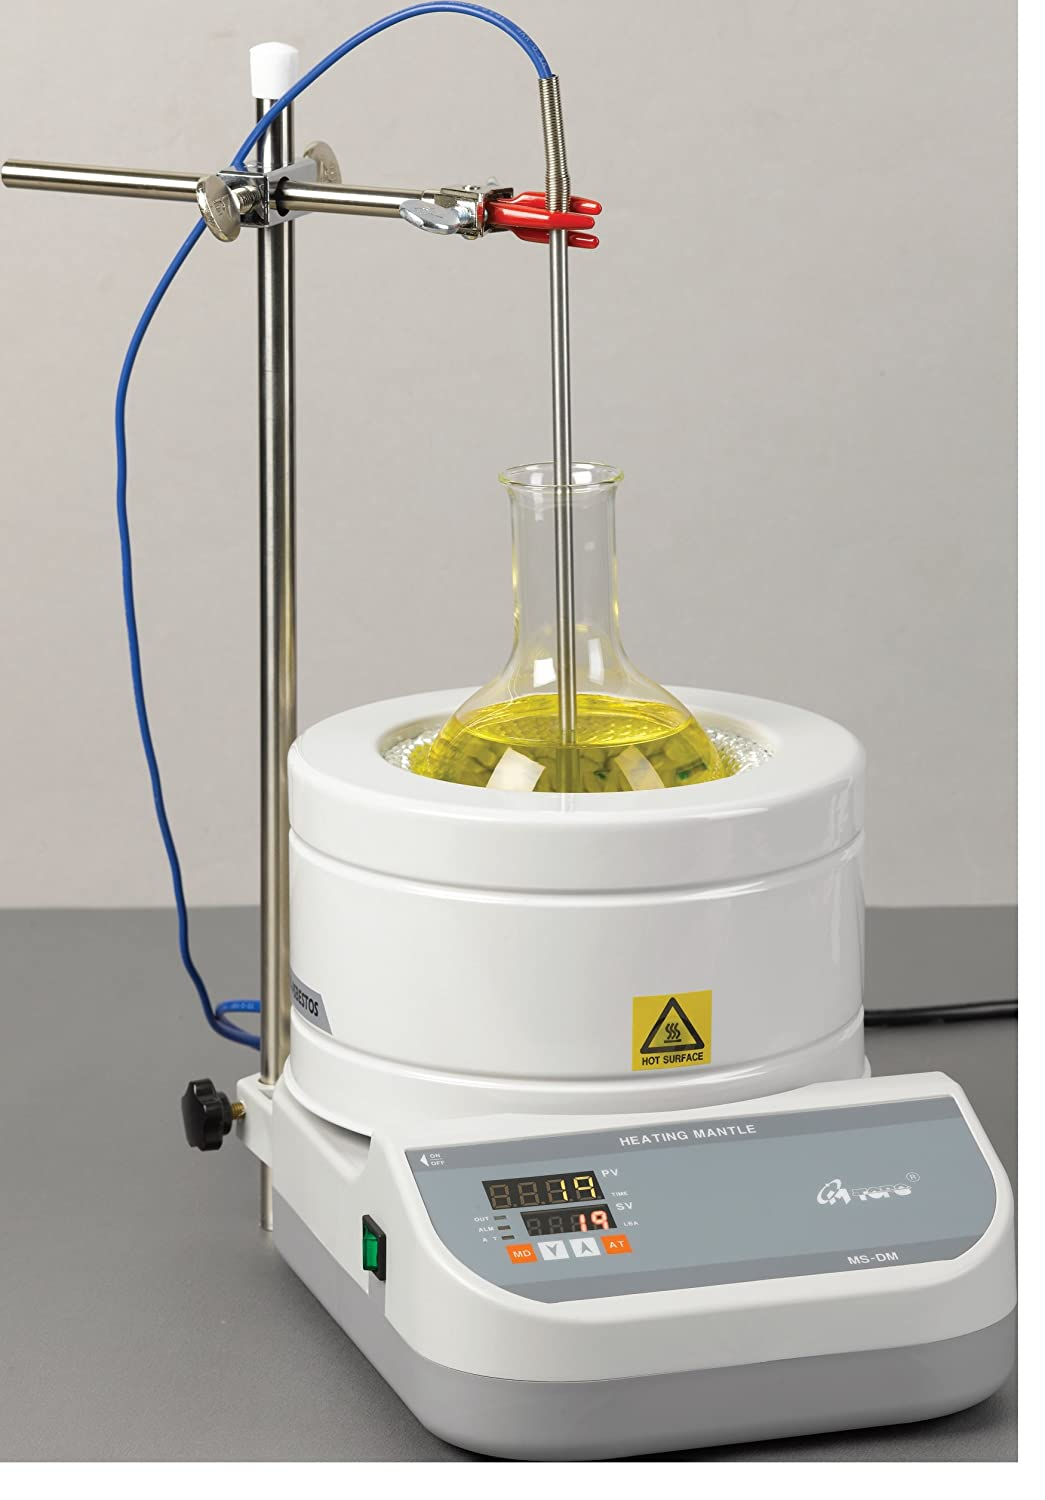 Mtops DM604 PID Controlled Heating Mantle,110V, 1000ml, Round Bottom Flask